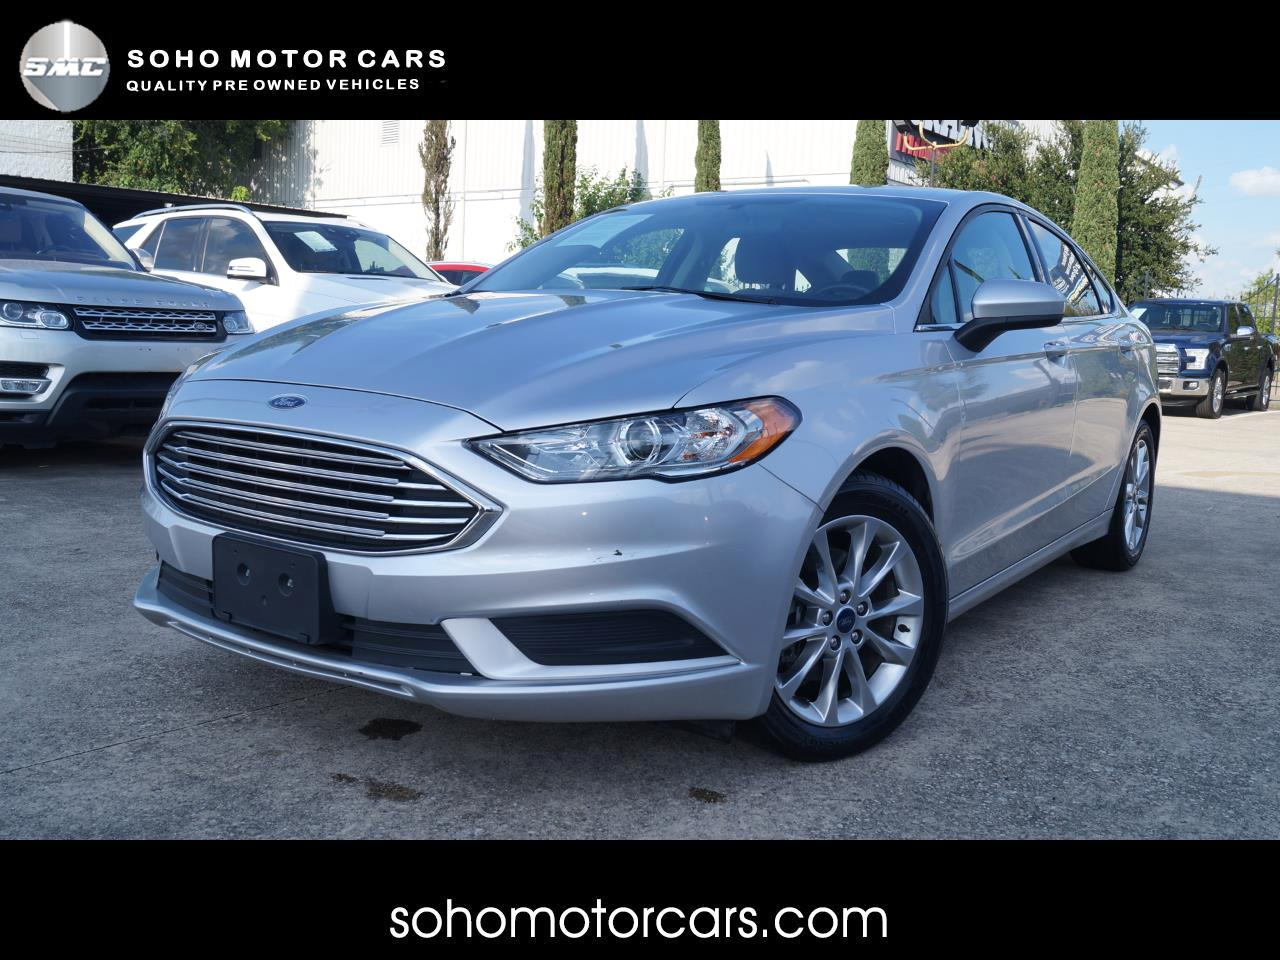 Ford Fusion 4dr Sdn I4 SE FWD 2017